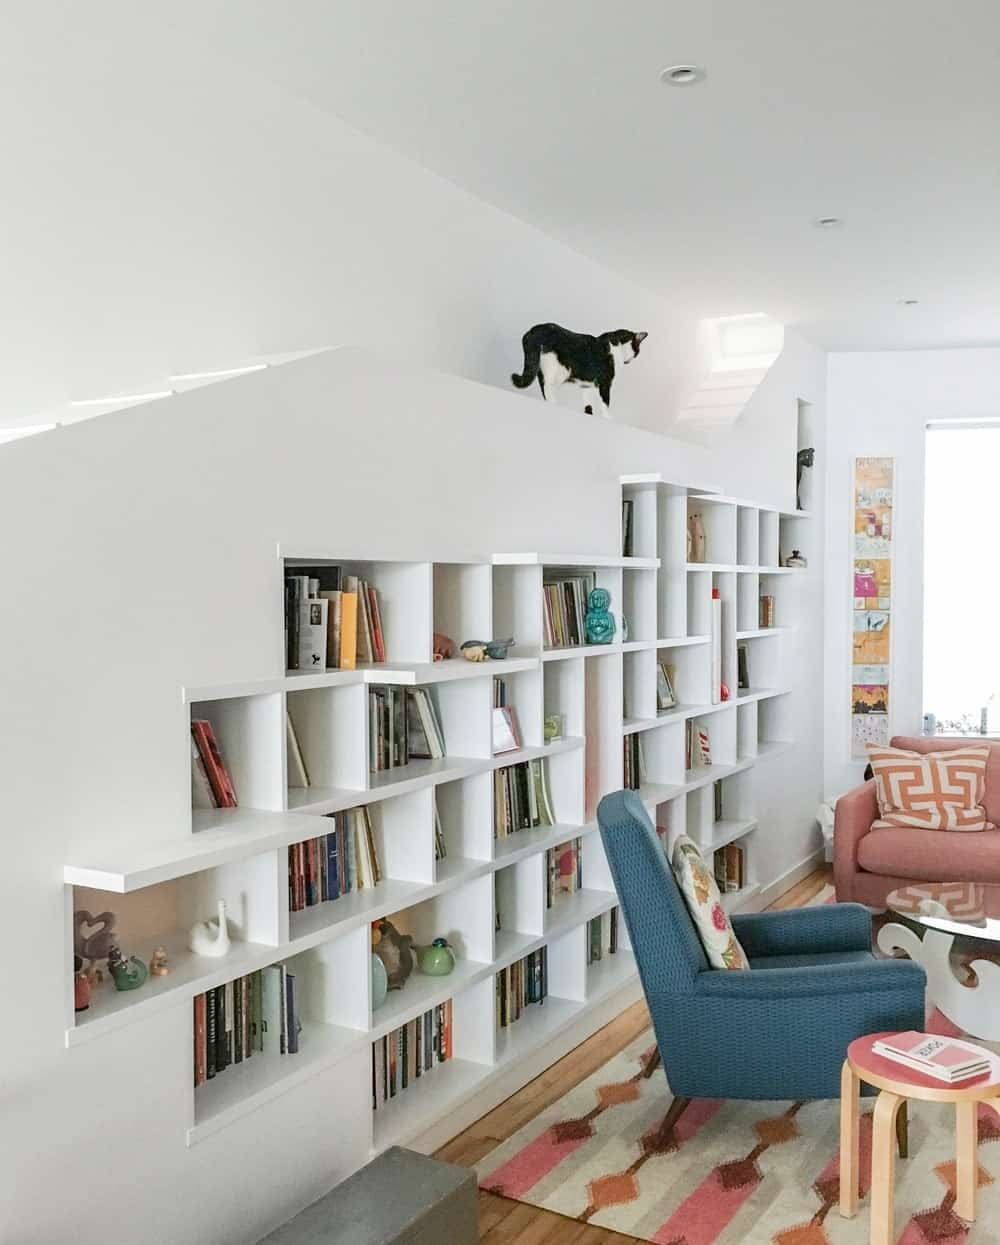 Another look of the living room showcasing the well-made bookshelf and cat area. Photo Credit: Francis Dzikowski/OTTO